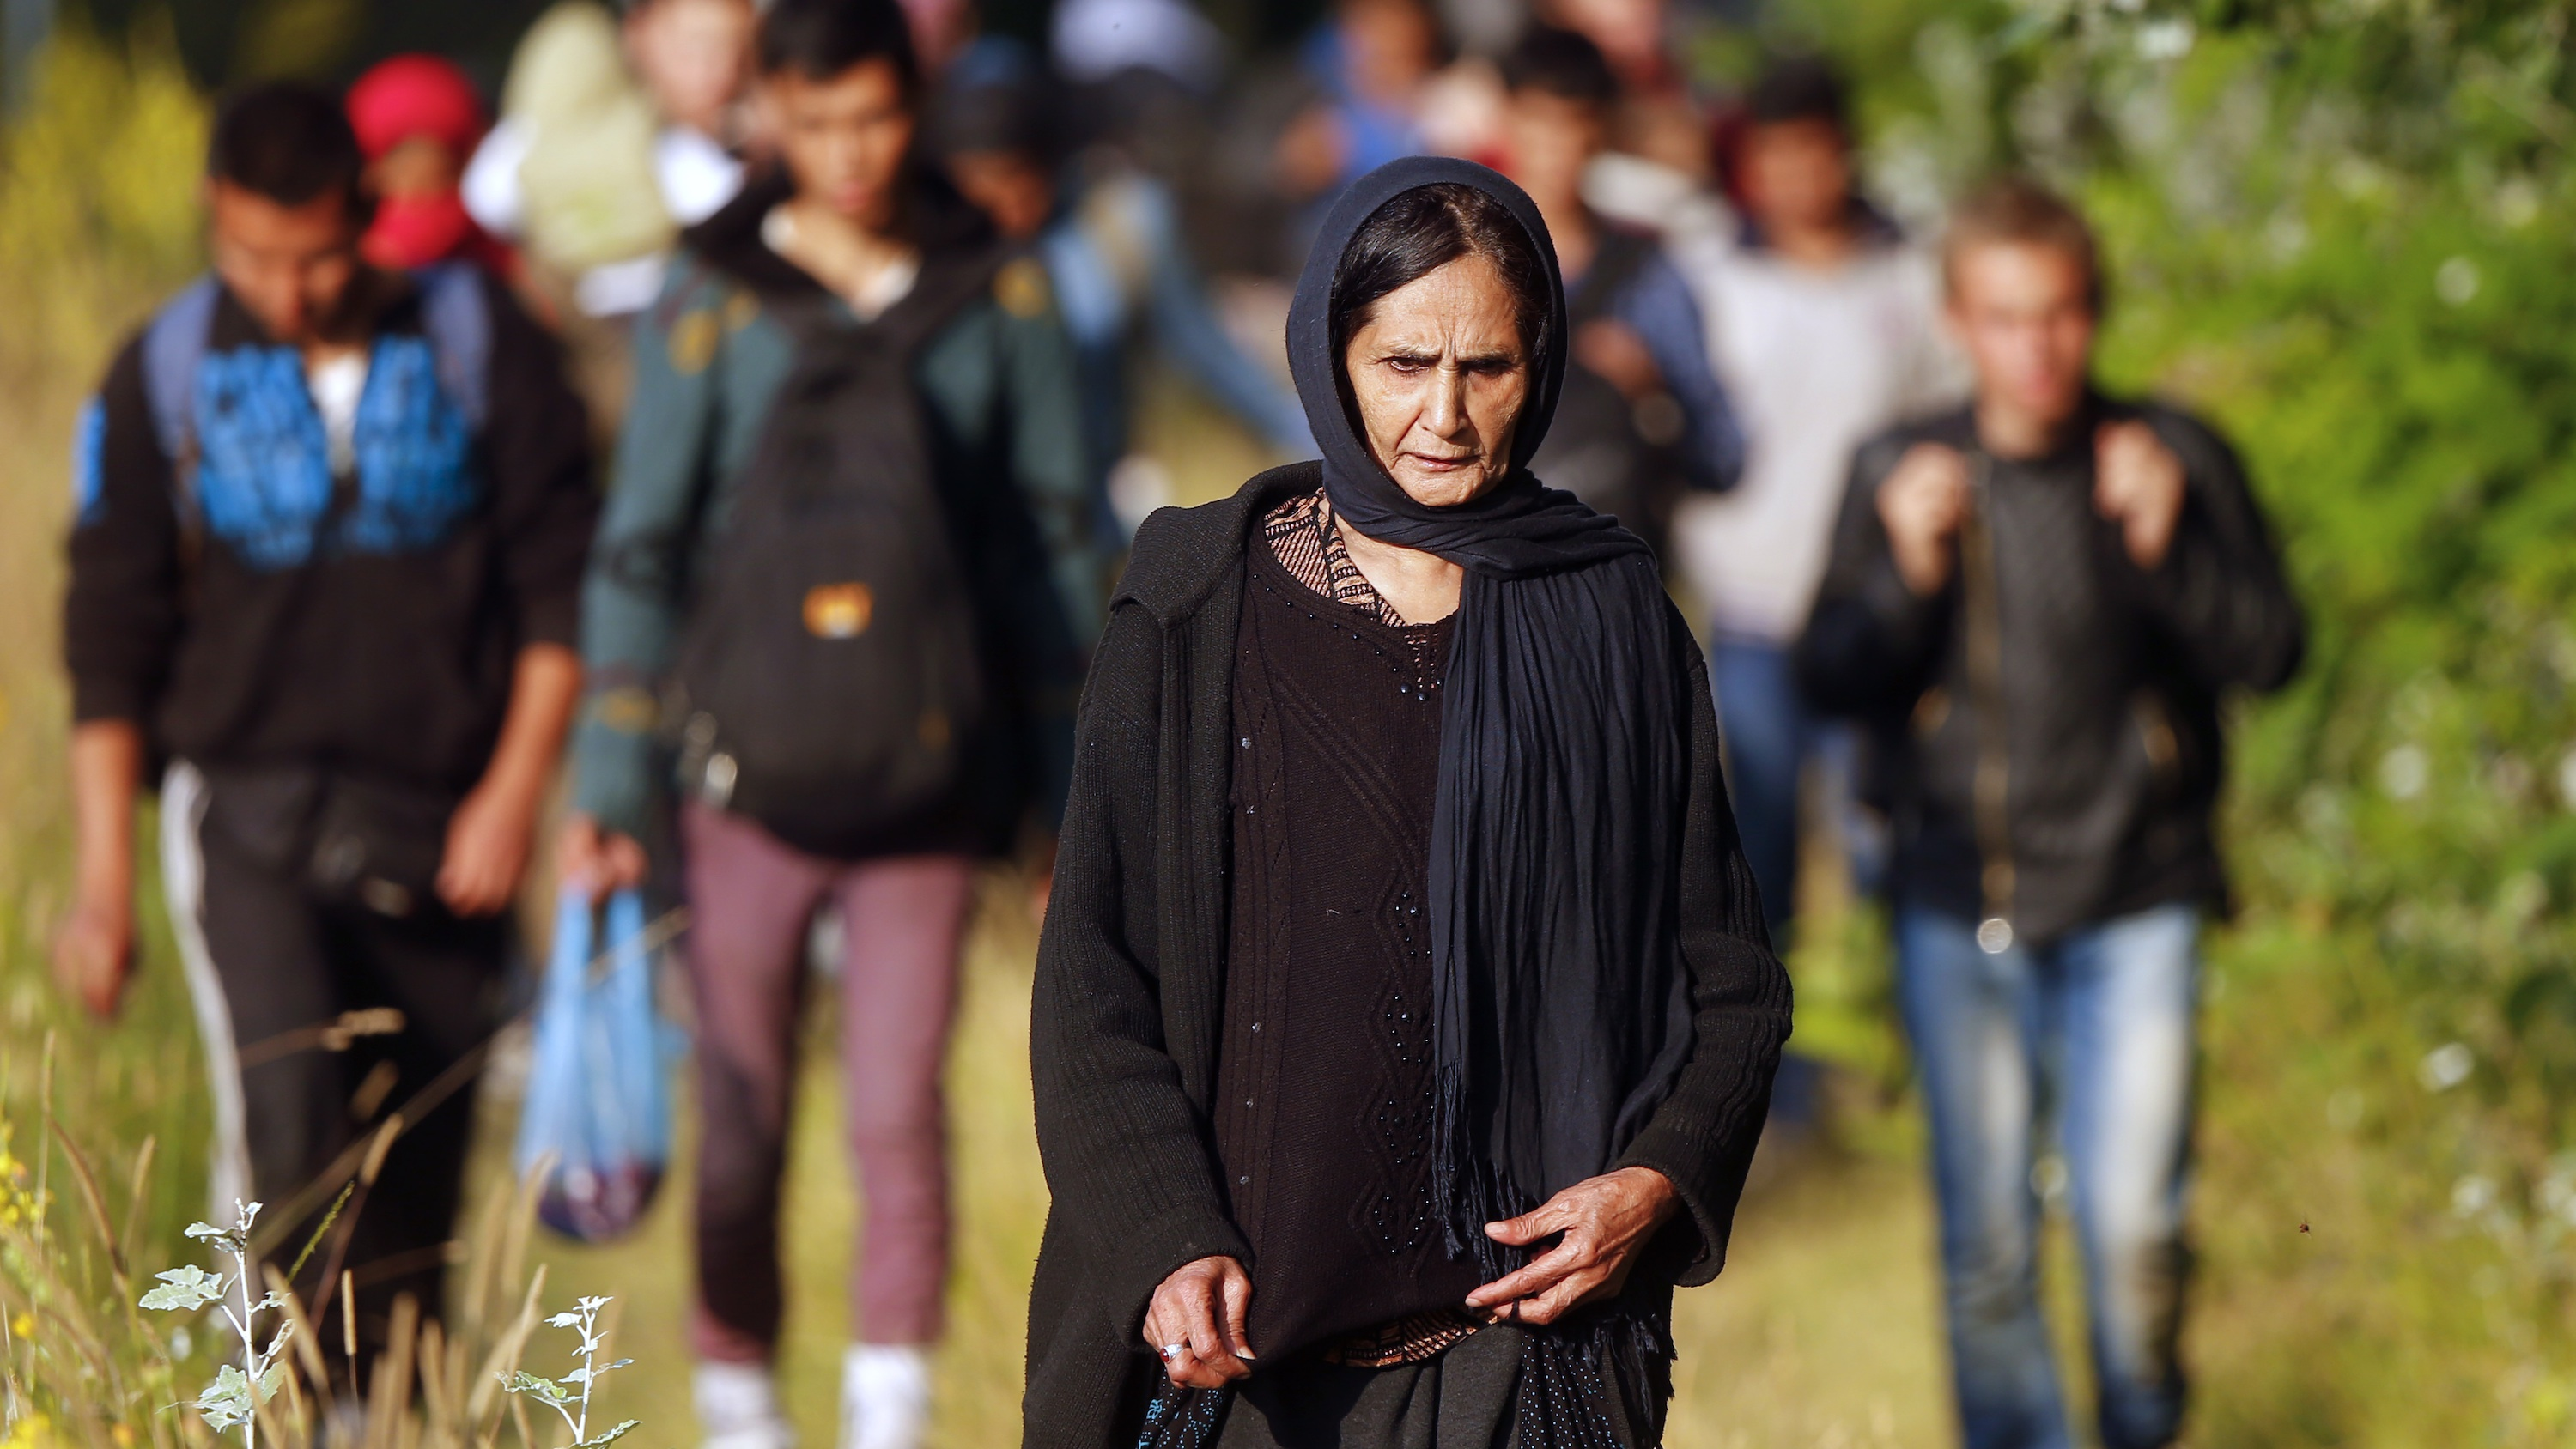 Refugees from Afghanistan walk after crossing the border from Serbia into Hungary.